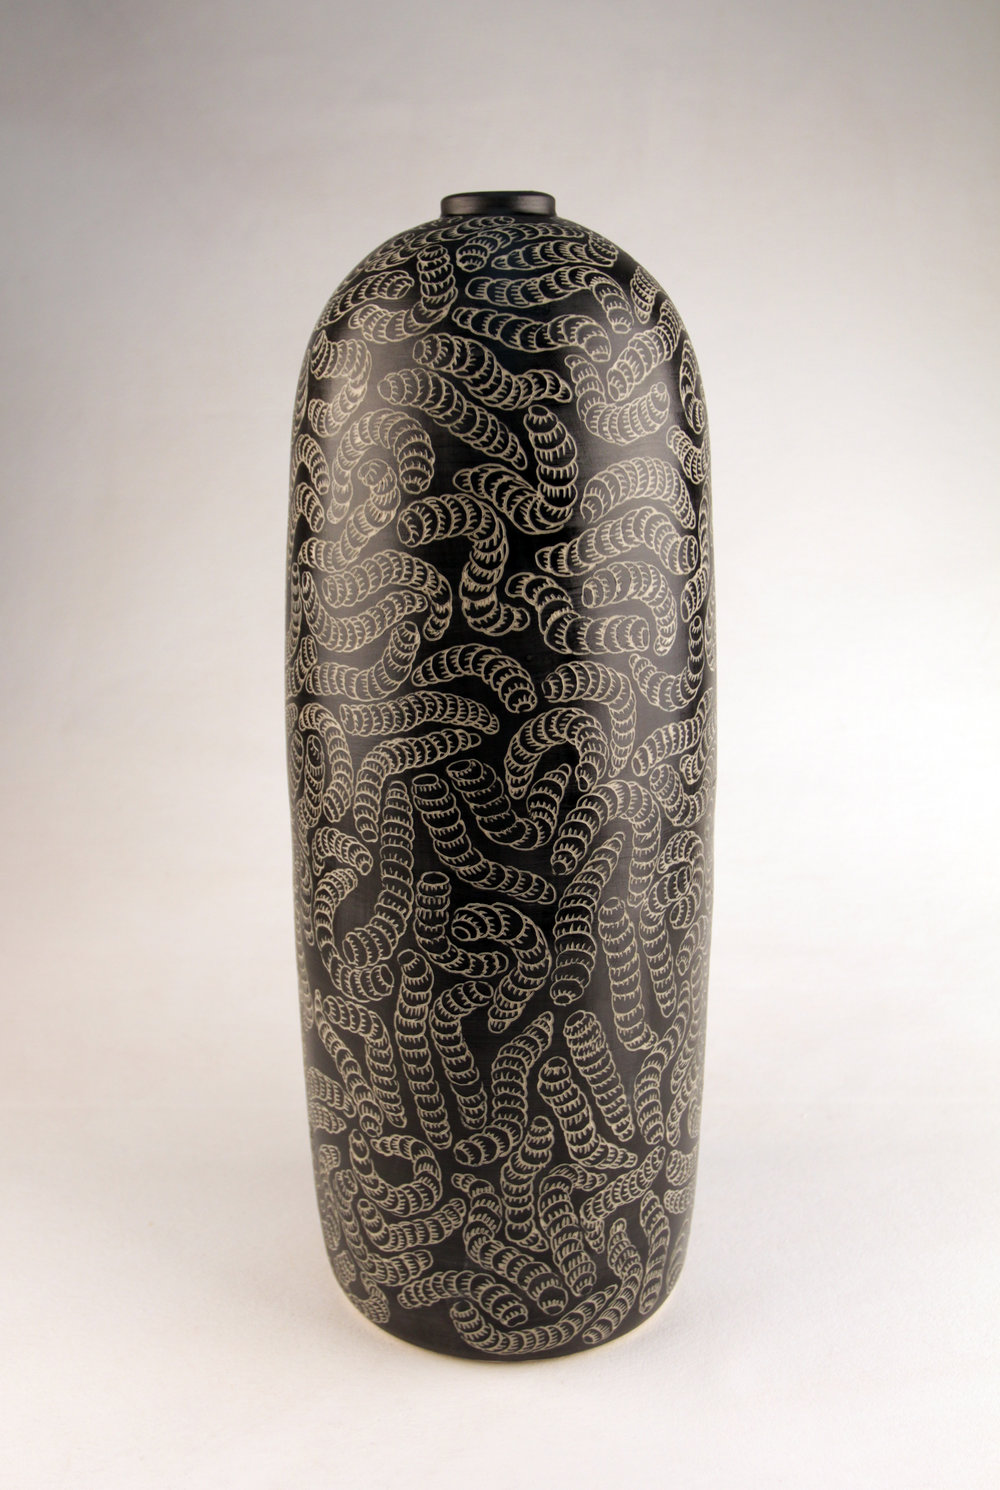 DEREK JUNGURRAYI THOMPSON  Maku Tjuta, 2016  435H x 166mm Stoneware Catalog #415C-16   EMAIL INQUIRY